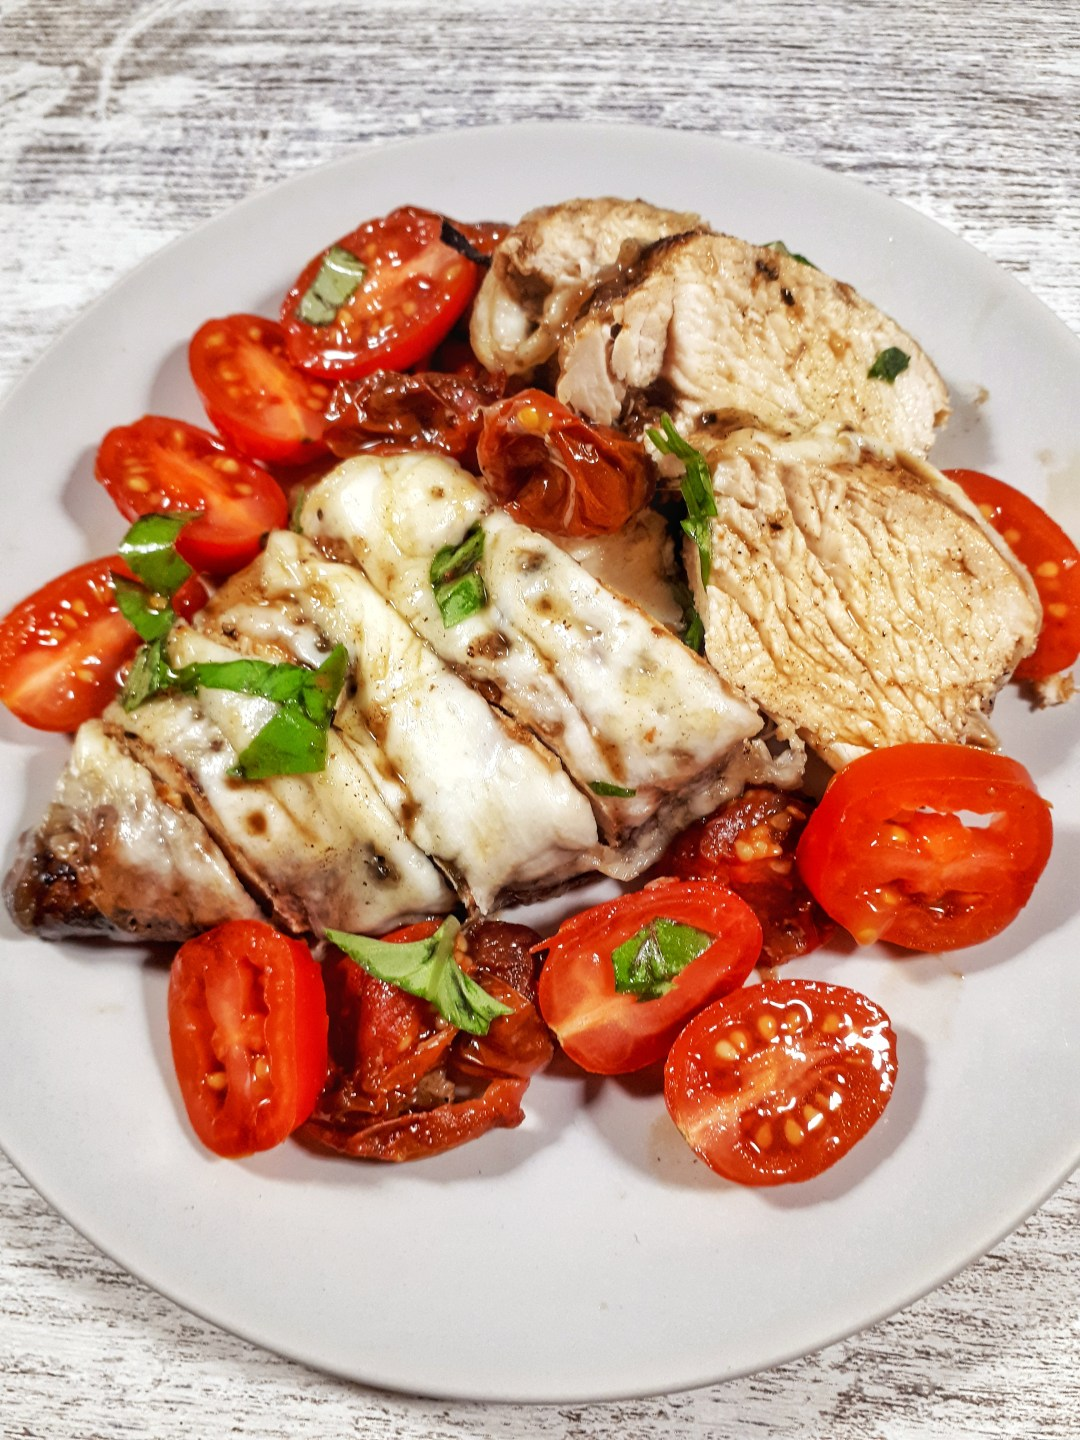 Oven Baked Chicken Breast with fresh mozzarella and cherry tomatoes is healthy, keto, simple, flavorful, and so tender…this is a great weeknight dinner recipe.